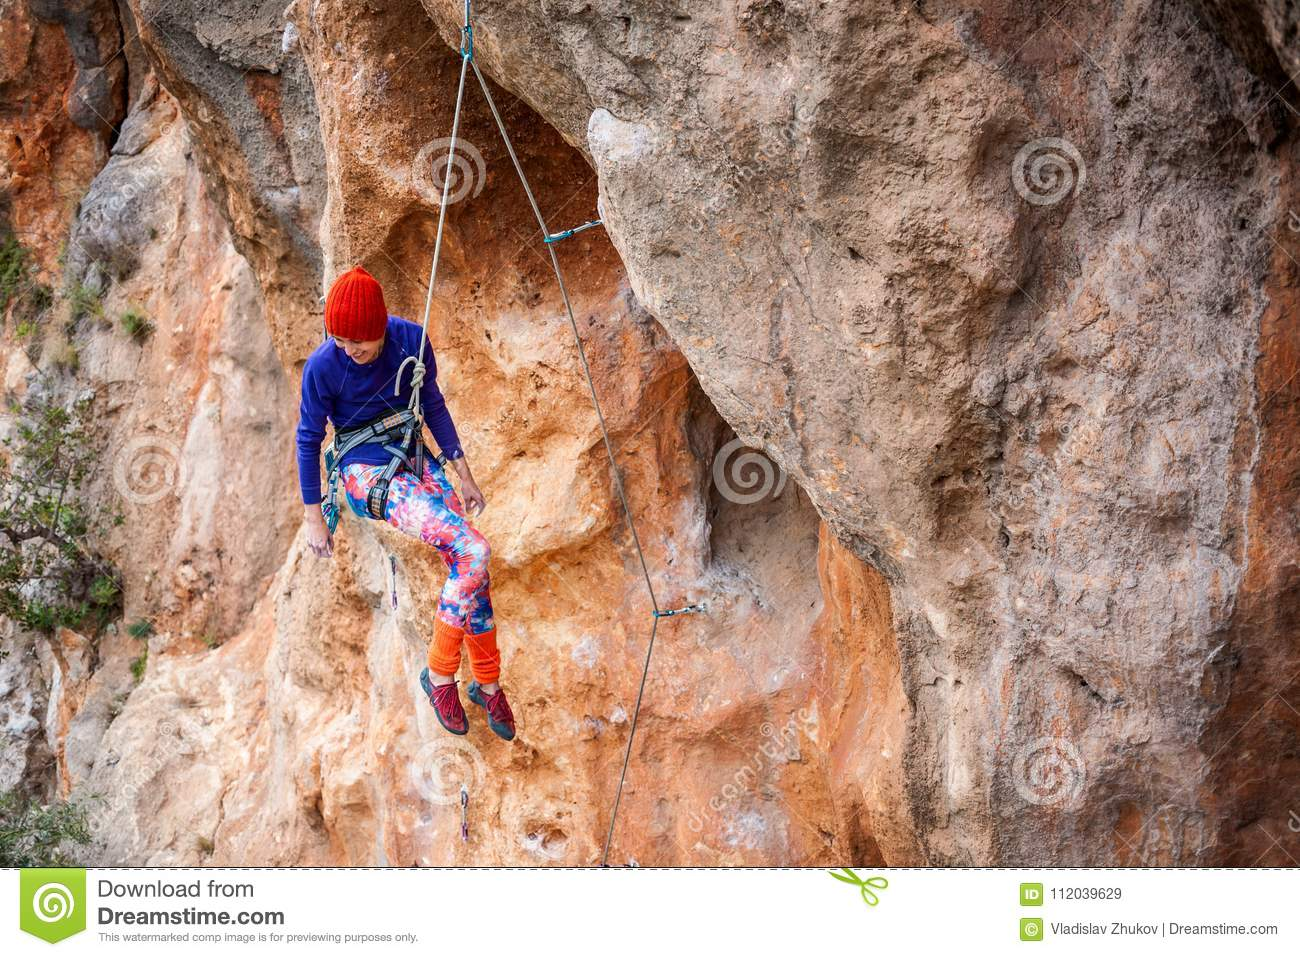 The climber is hanging on a rope.